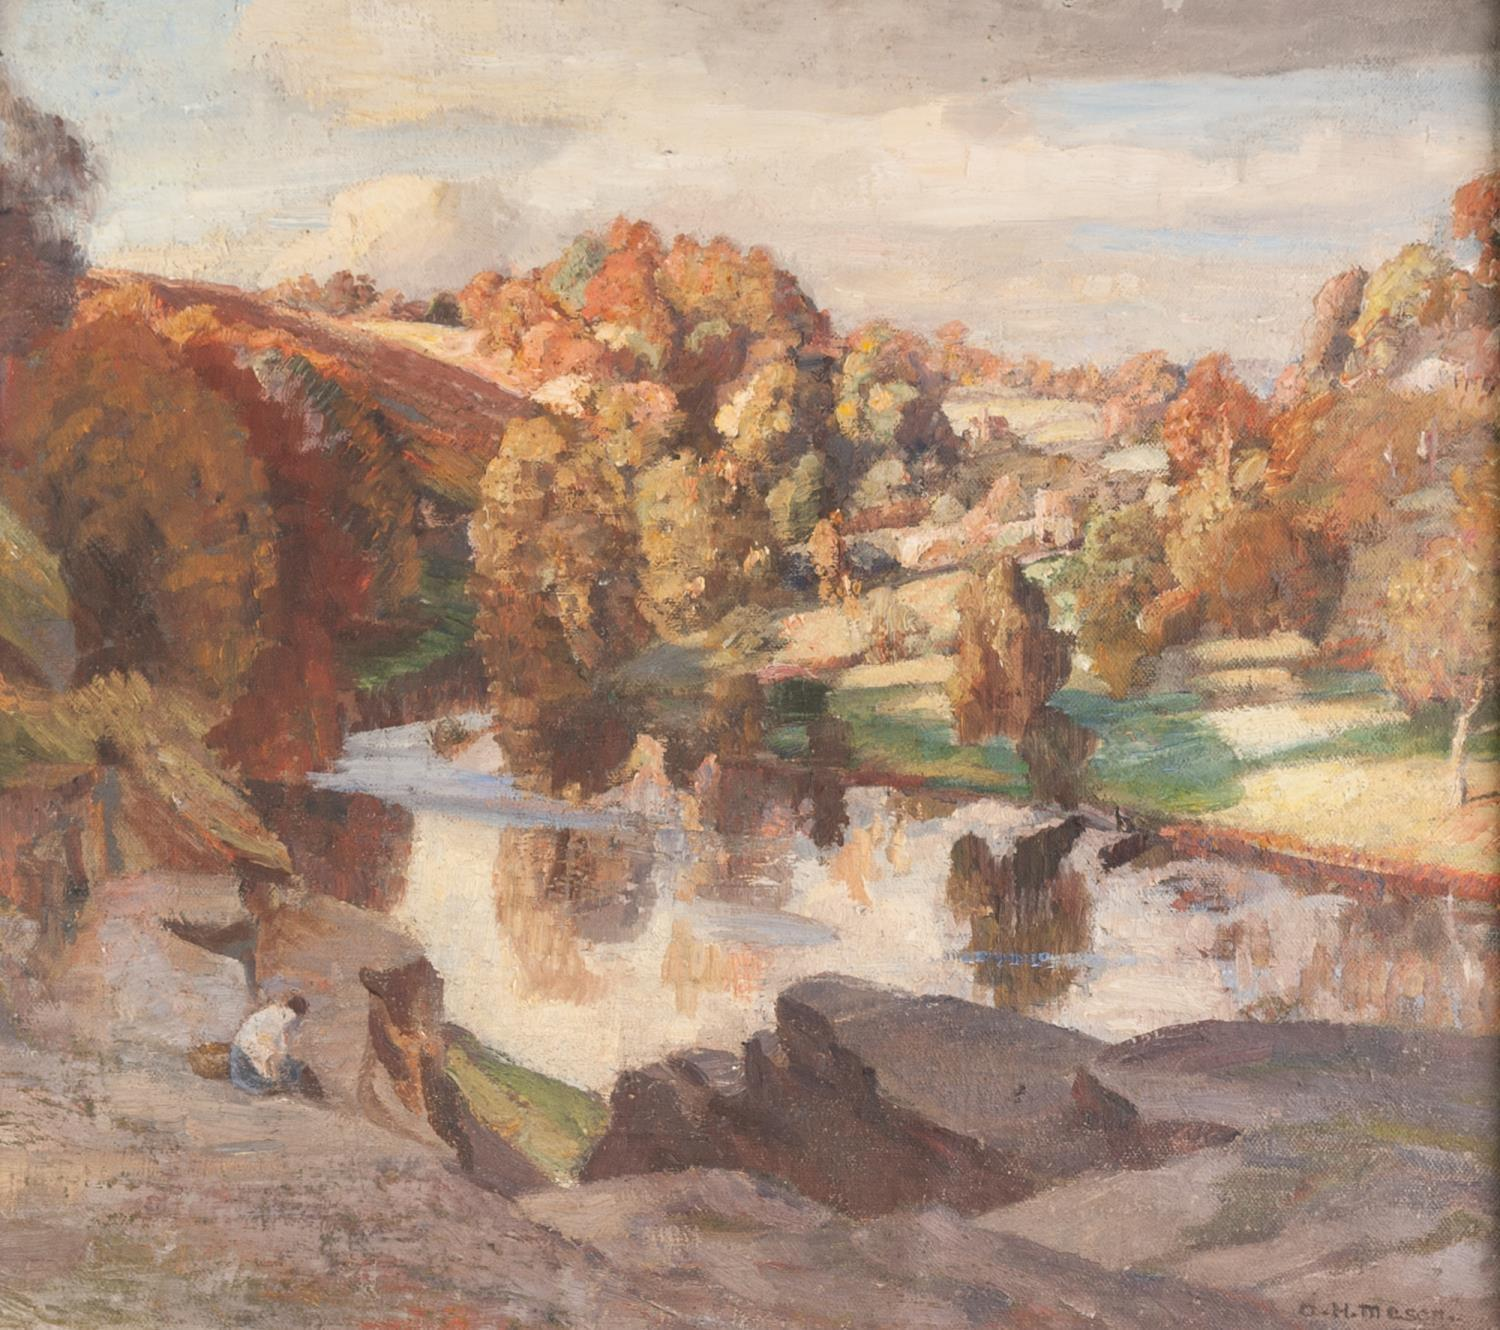 Lot 257 - ARNOLD HENRY MASON (1885-1963) OIL PAINTING ON BOARD Tranquil river landscape Signed 15 ½? x 17? (